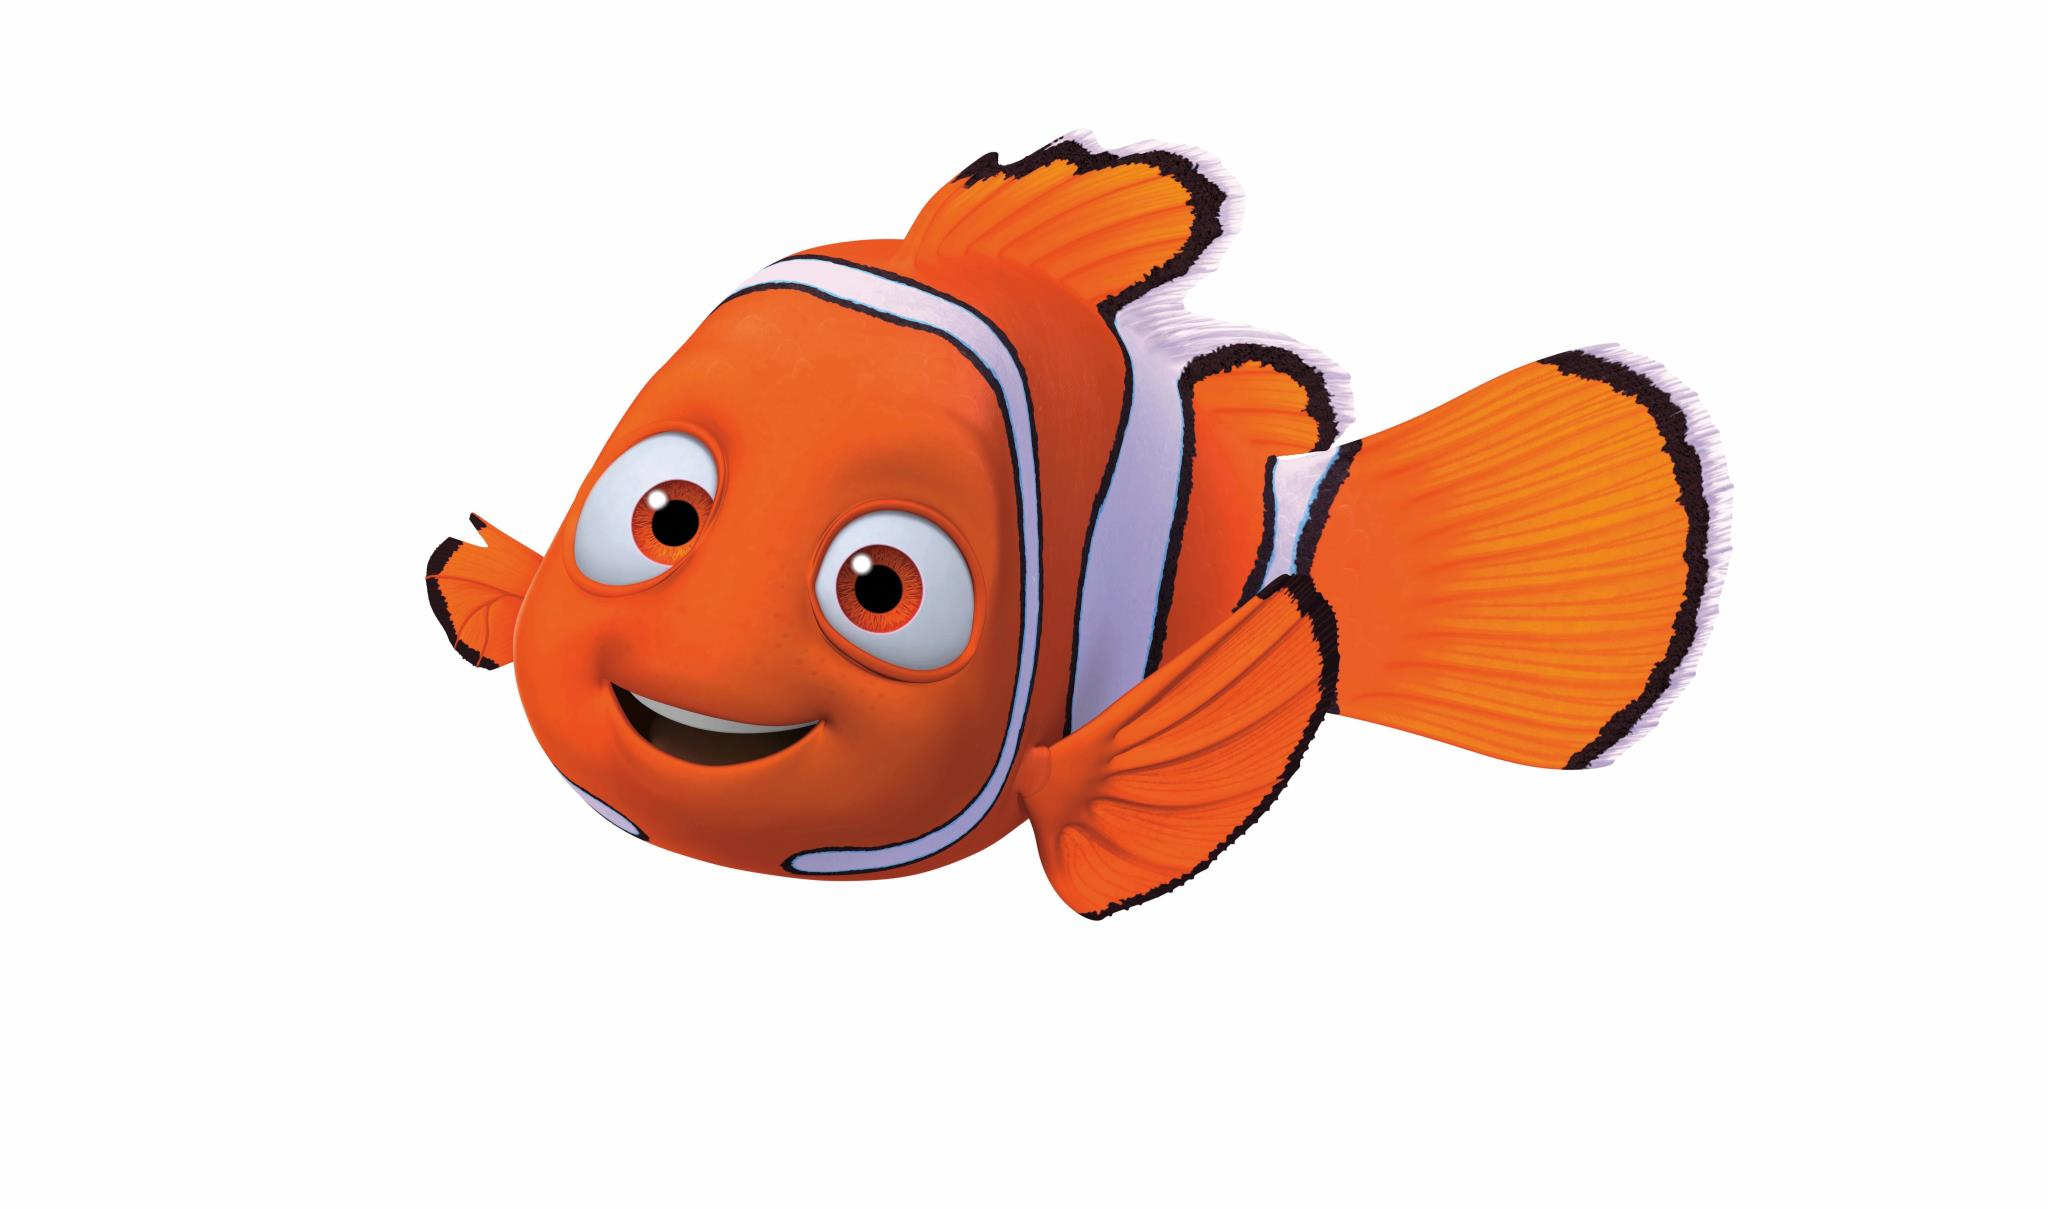 Finding-Nemo-Animated-3d-Disney-Film-HD-1080p-wallpaper-wp3405526